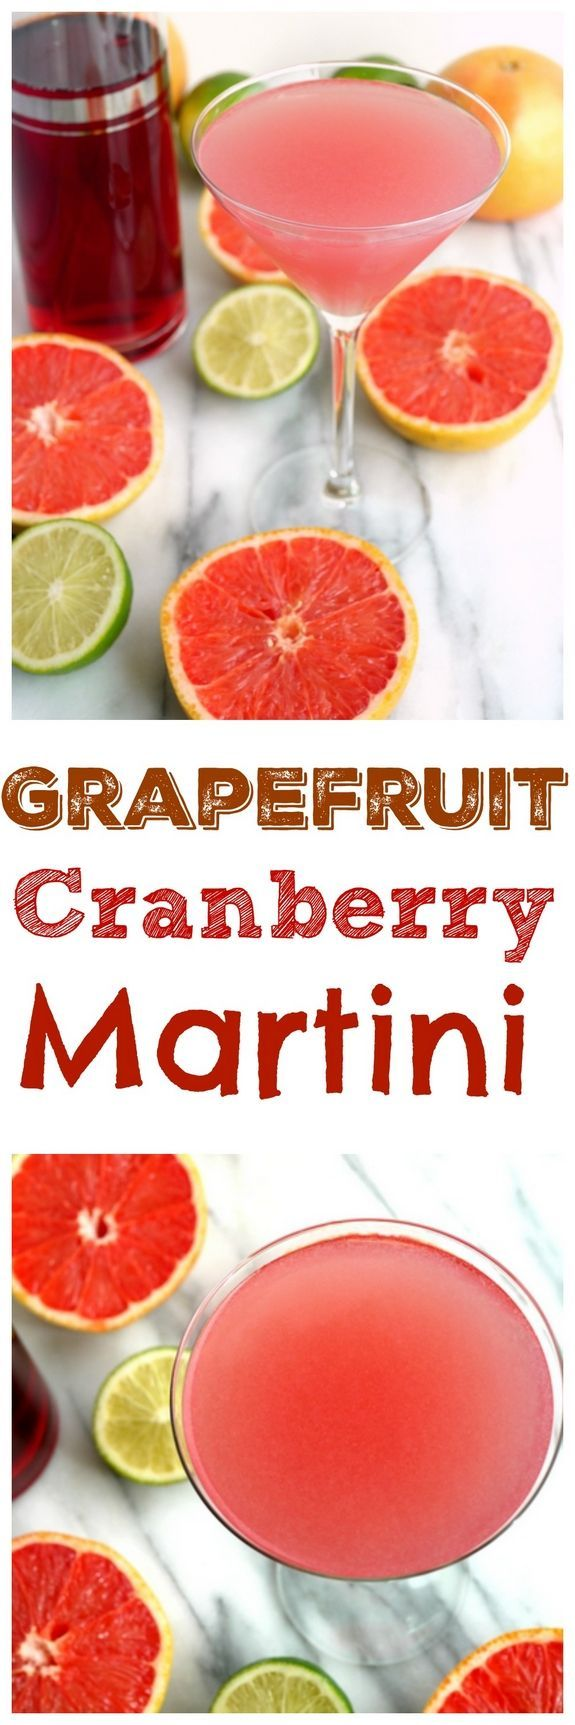 Grapefruit Cranberry Martini from NoblePig.com.